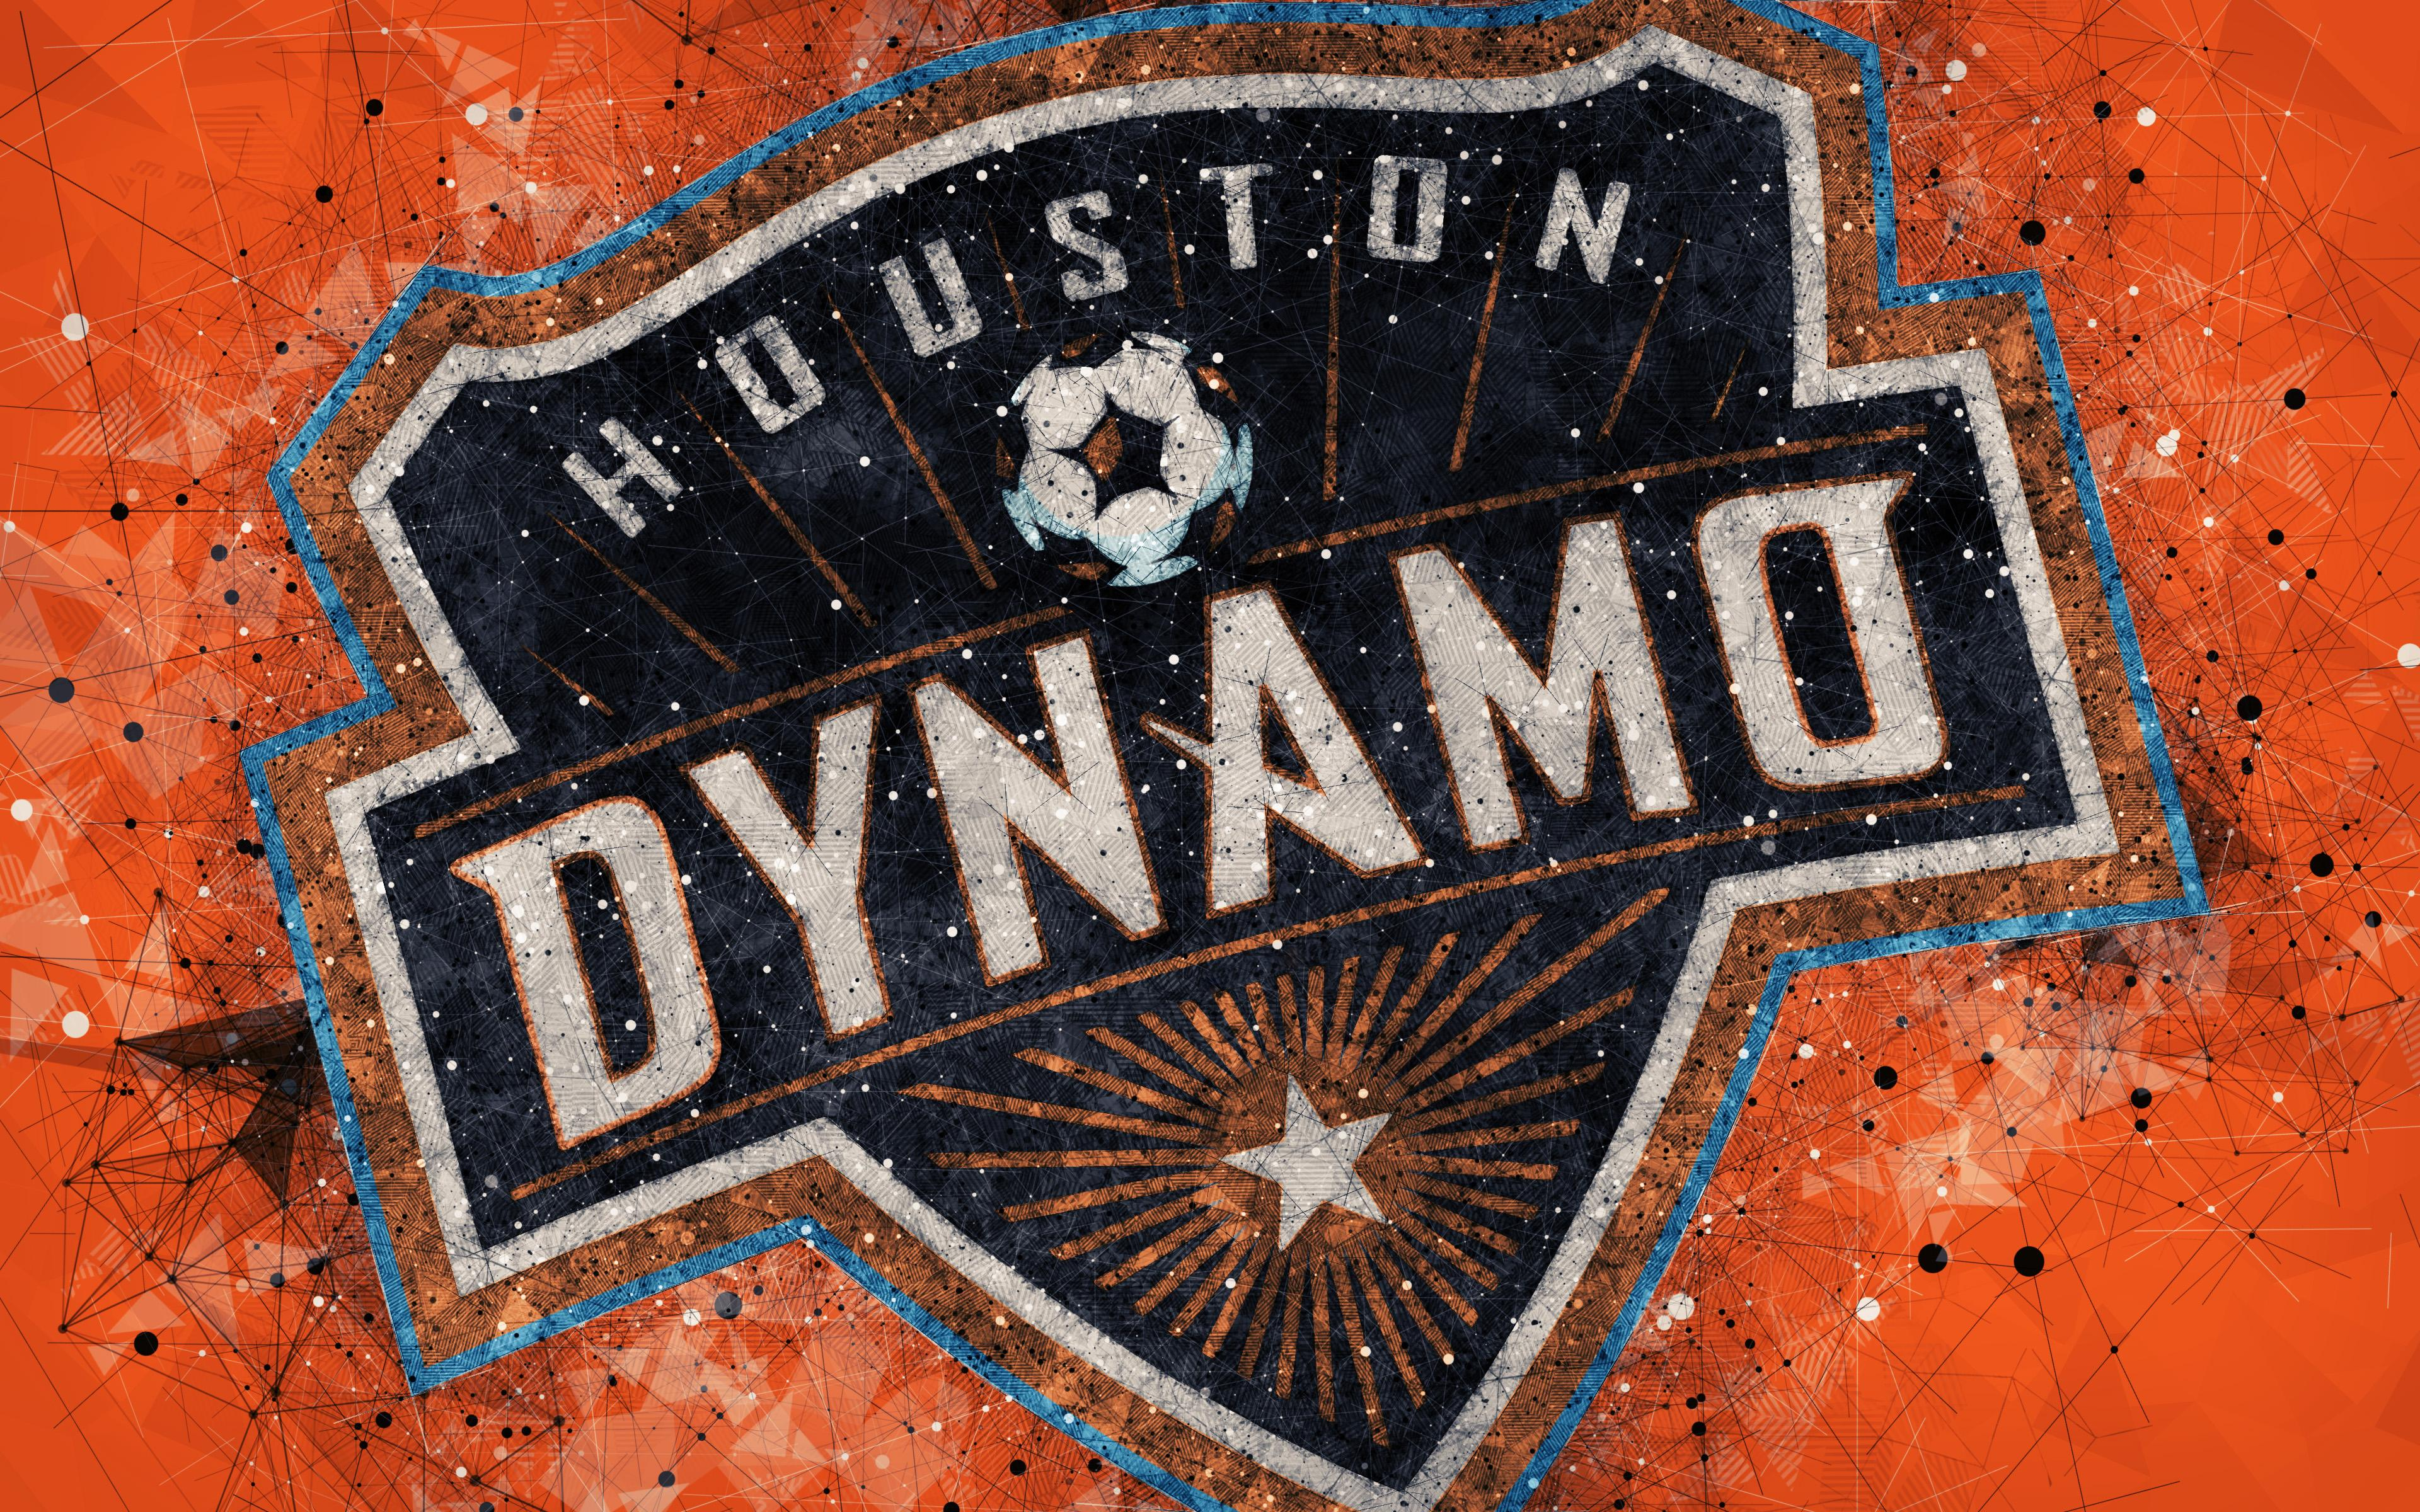 Emblem, MLS, Logo, Soccer, Houston Dynamo wallpapers and backgrounds